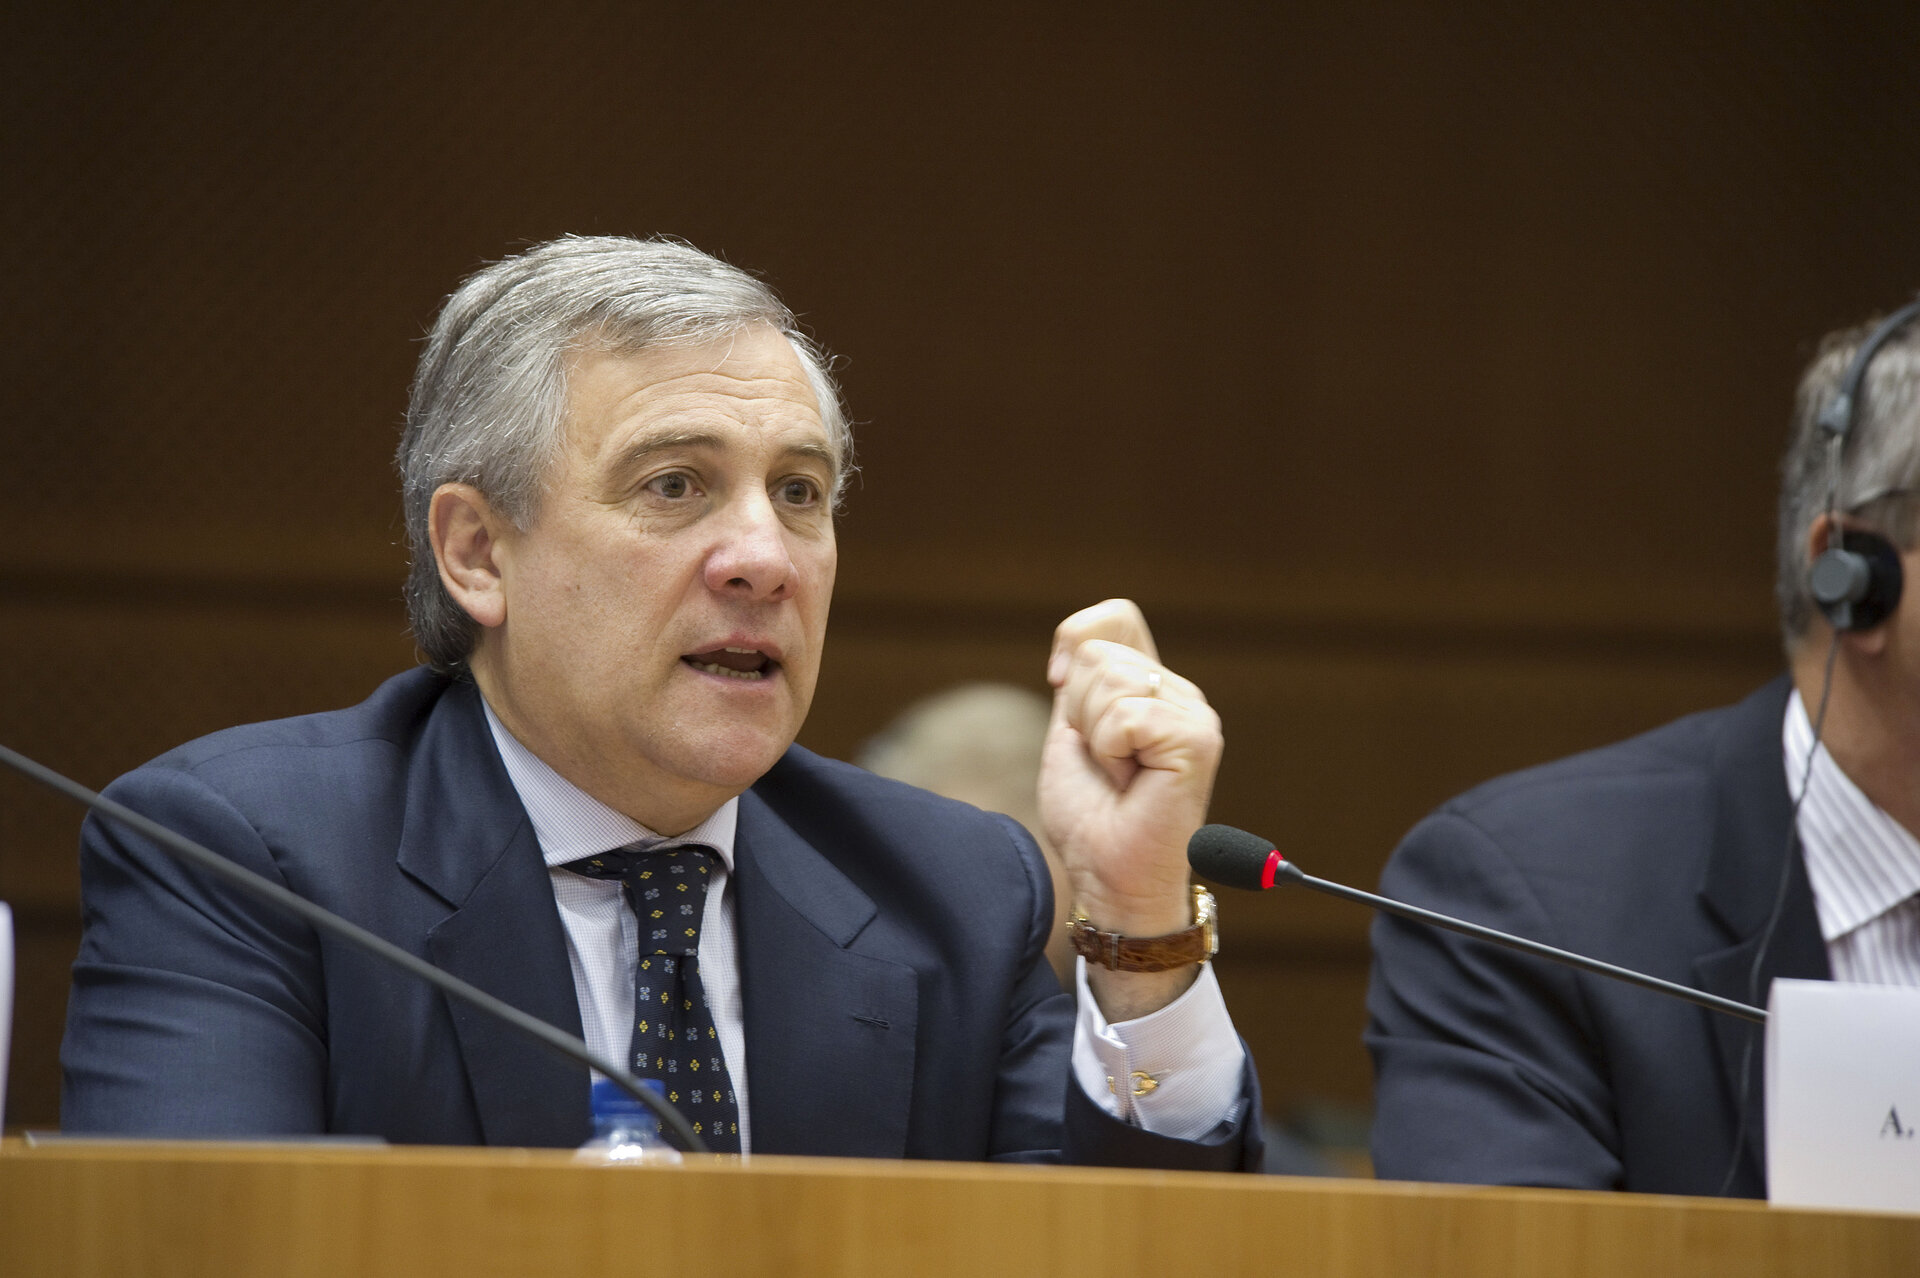 Antonio Tajani, Vice-President of the European Commission, at the 4th Conference on EU Space Policy